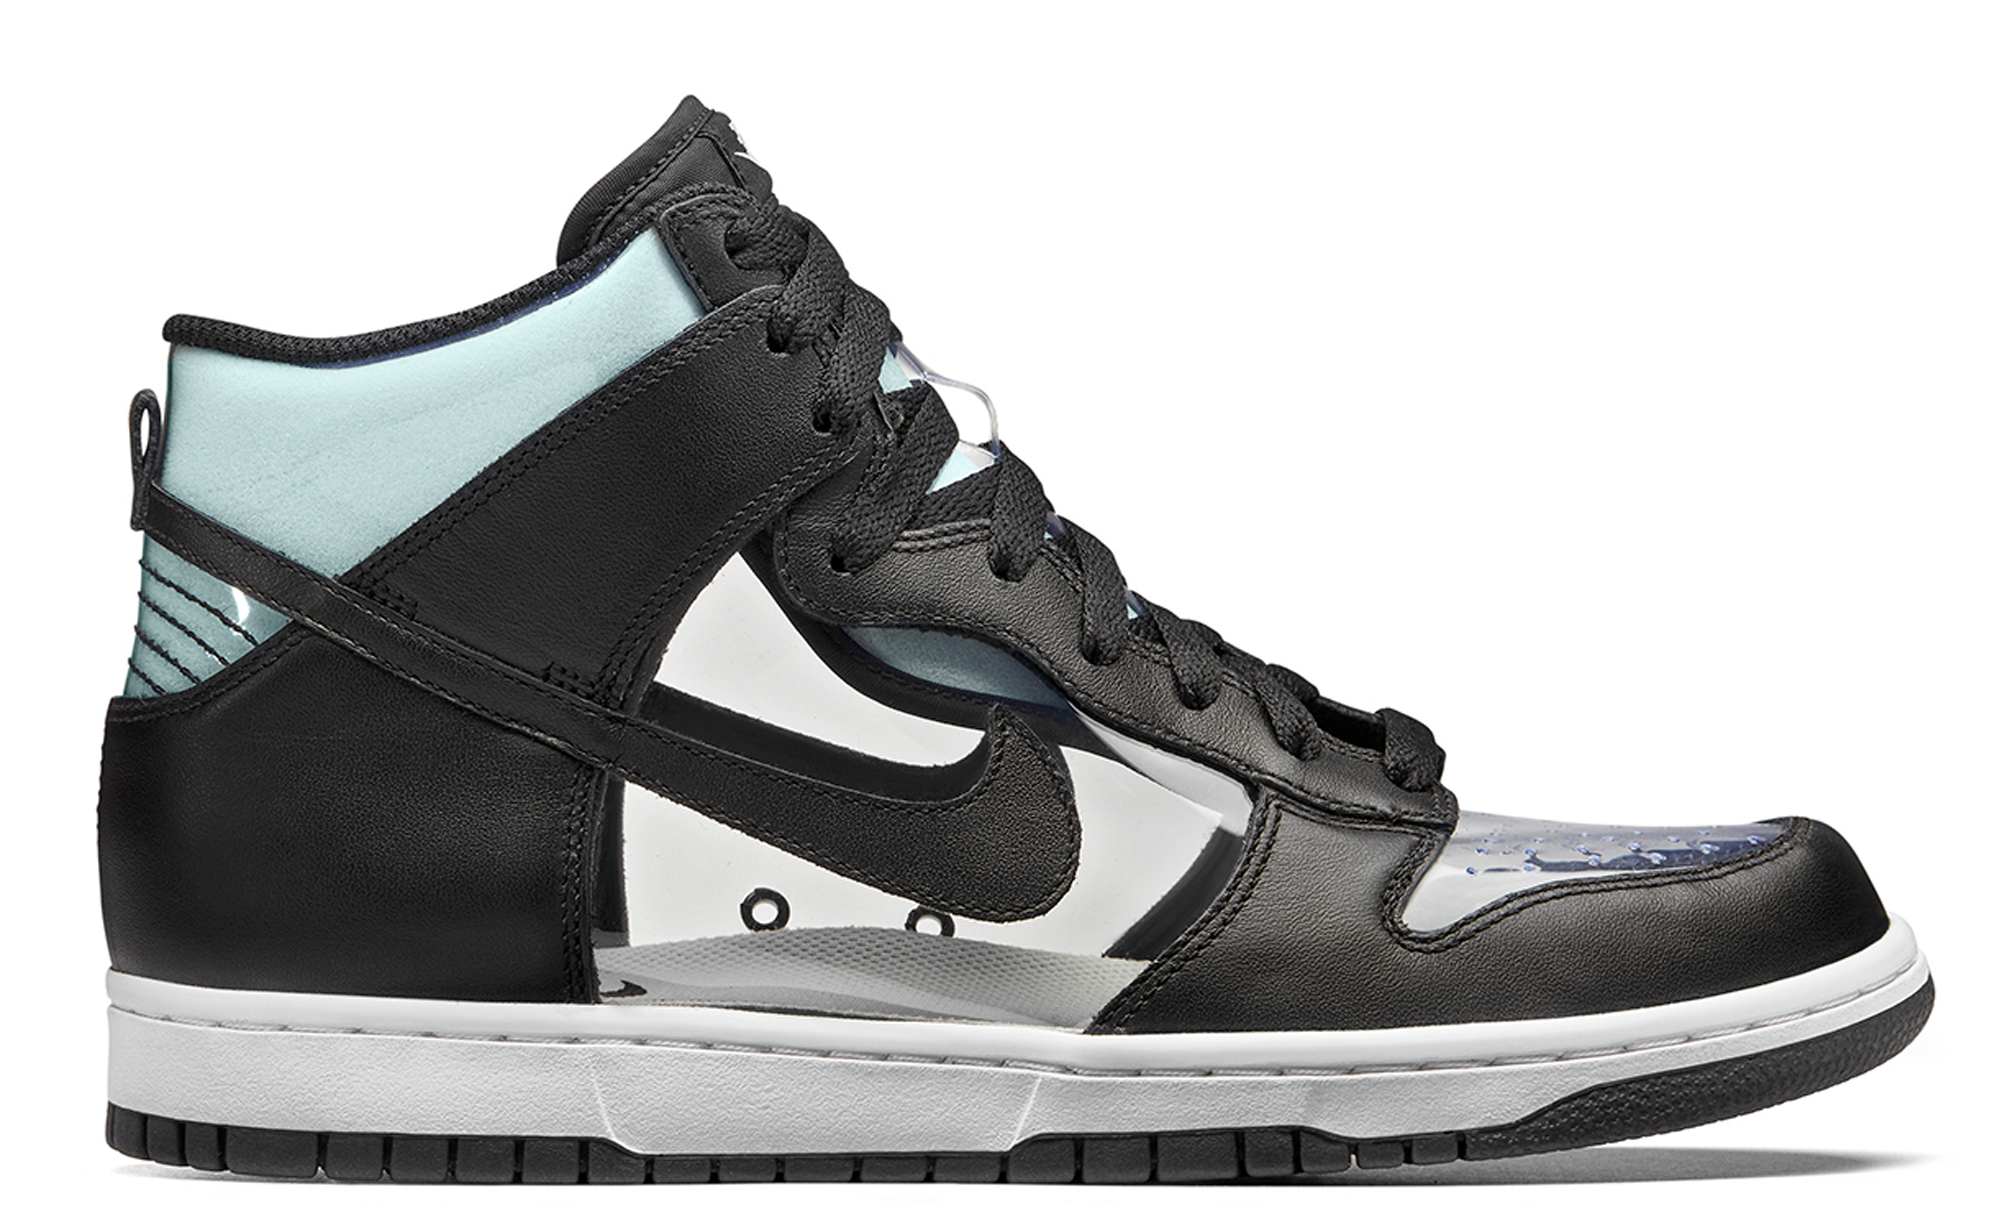 new product a56ca 02dc0 Nike Dunk High COMME des GARCONS Clear - StockX News